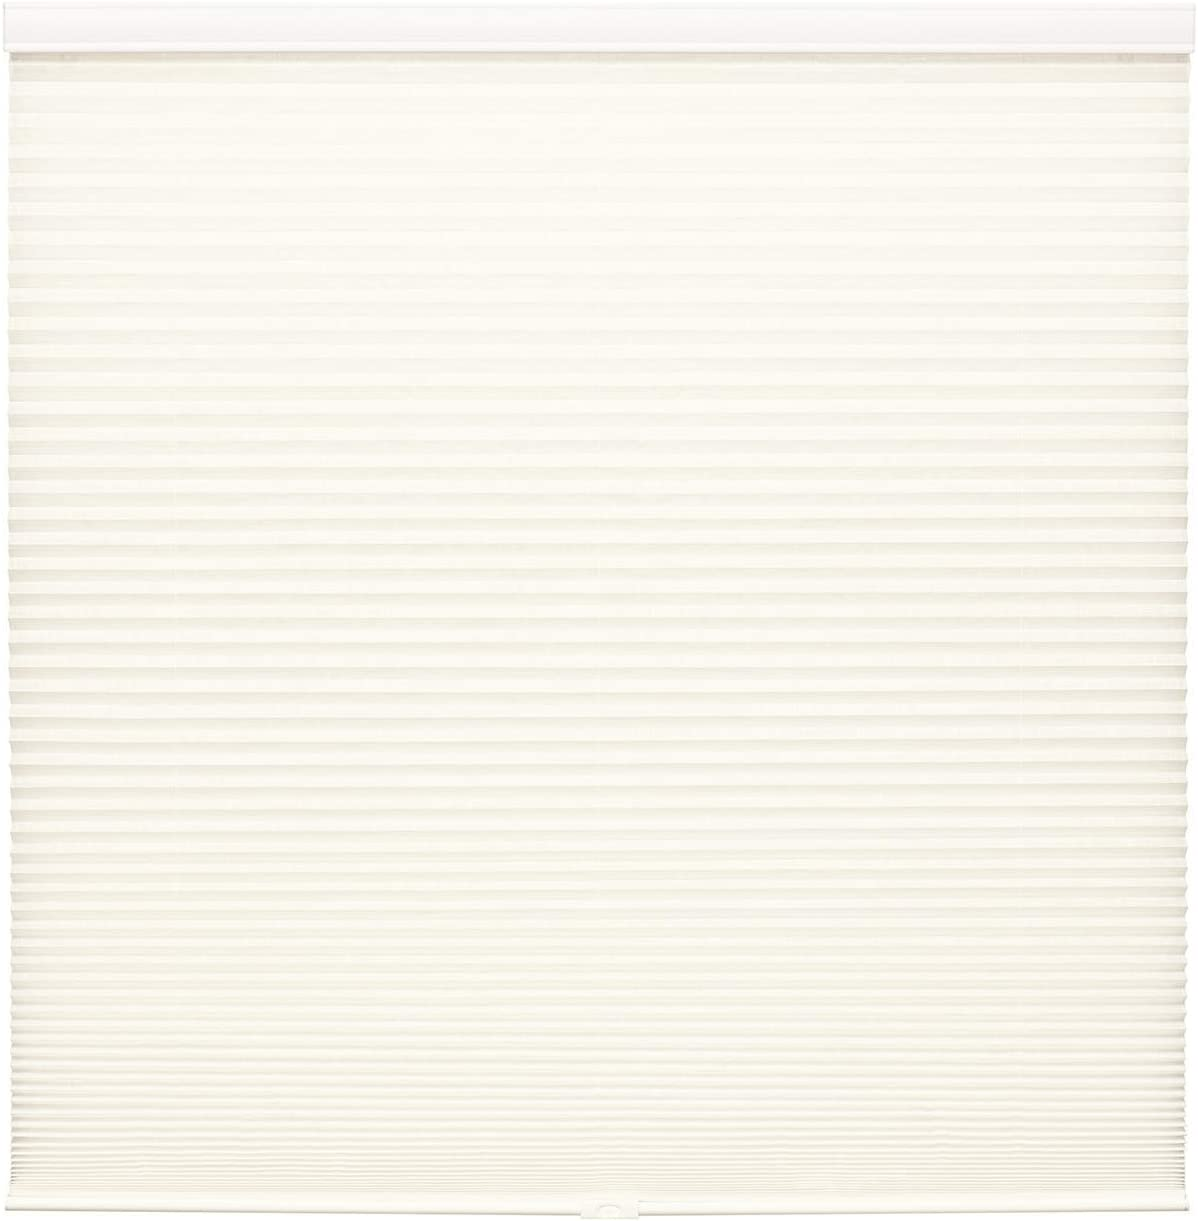 Cordless Textured Fabric Cellular Shade (White, 43 x 64)